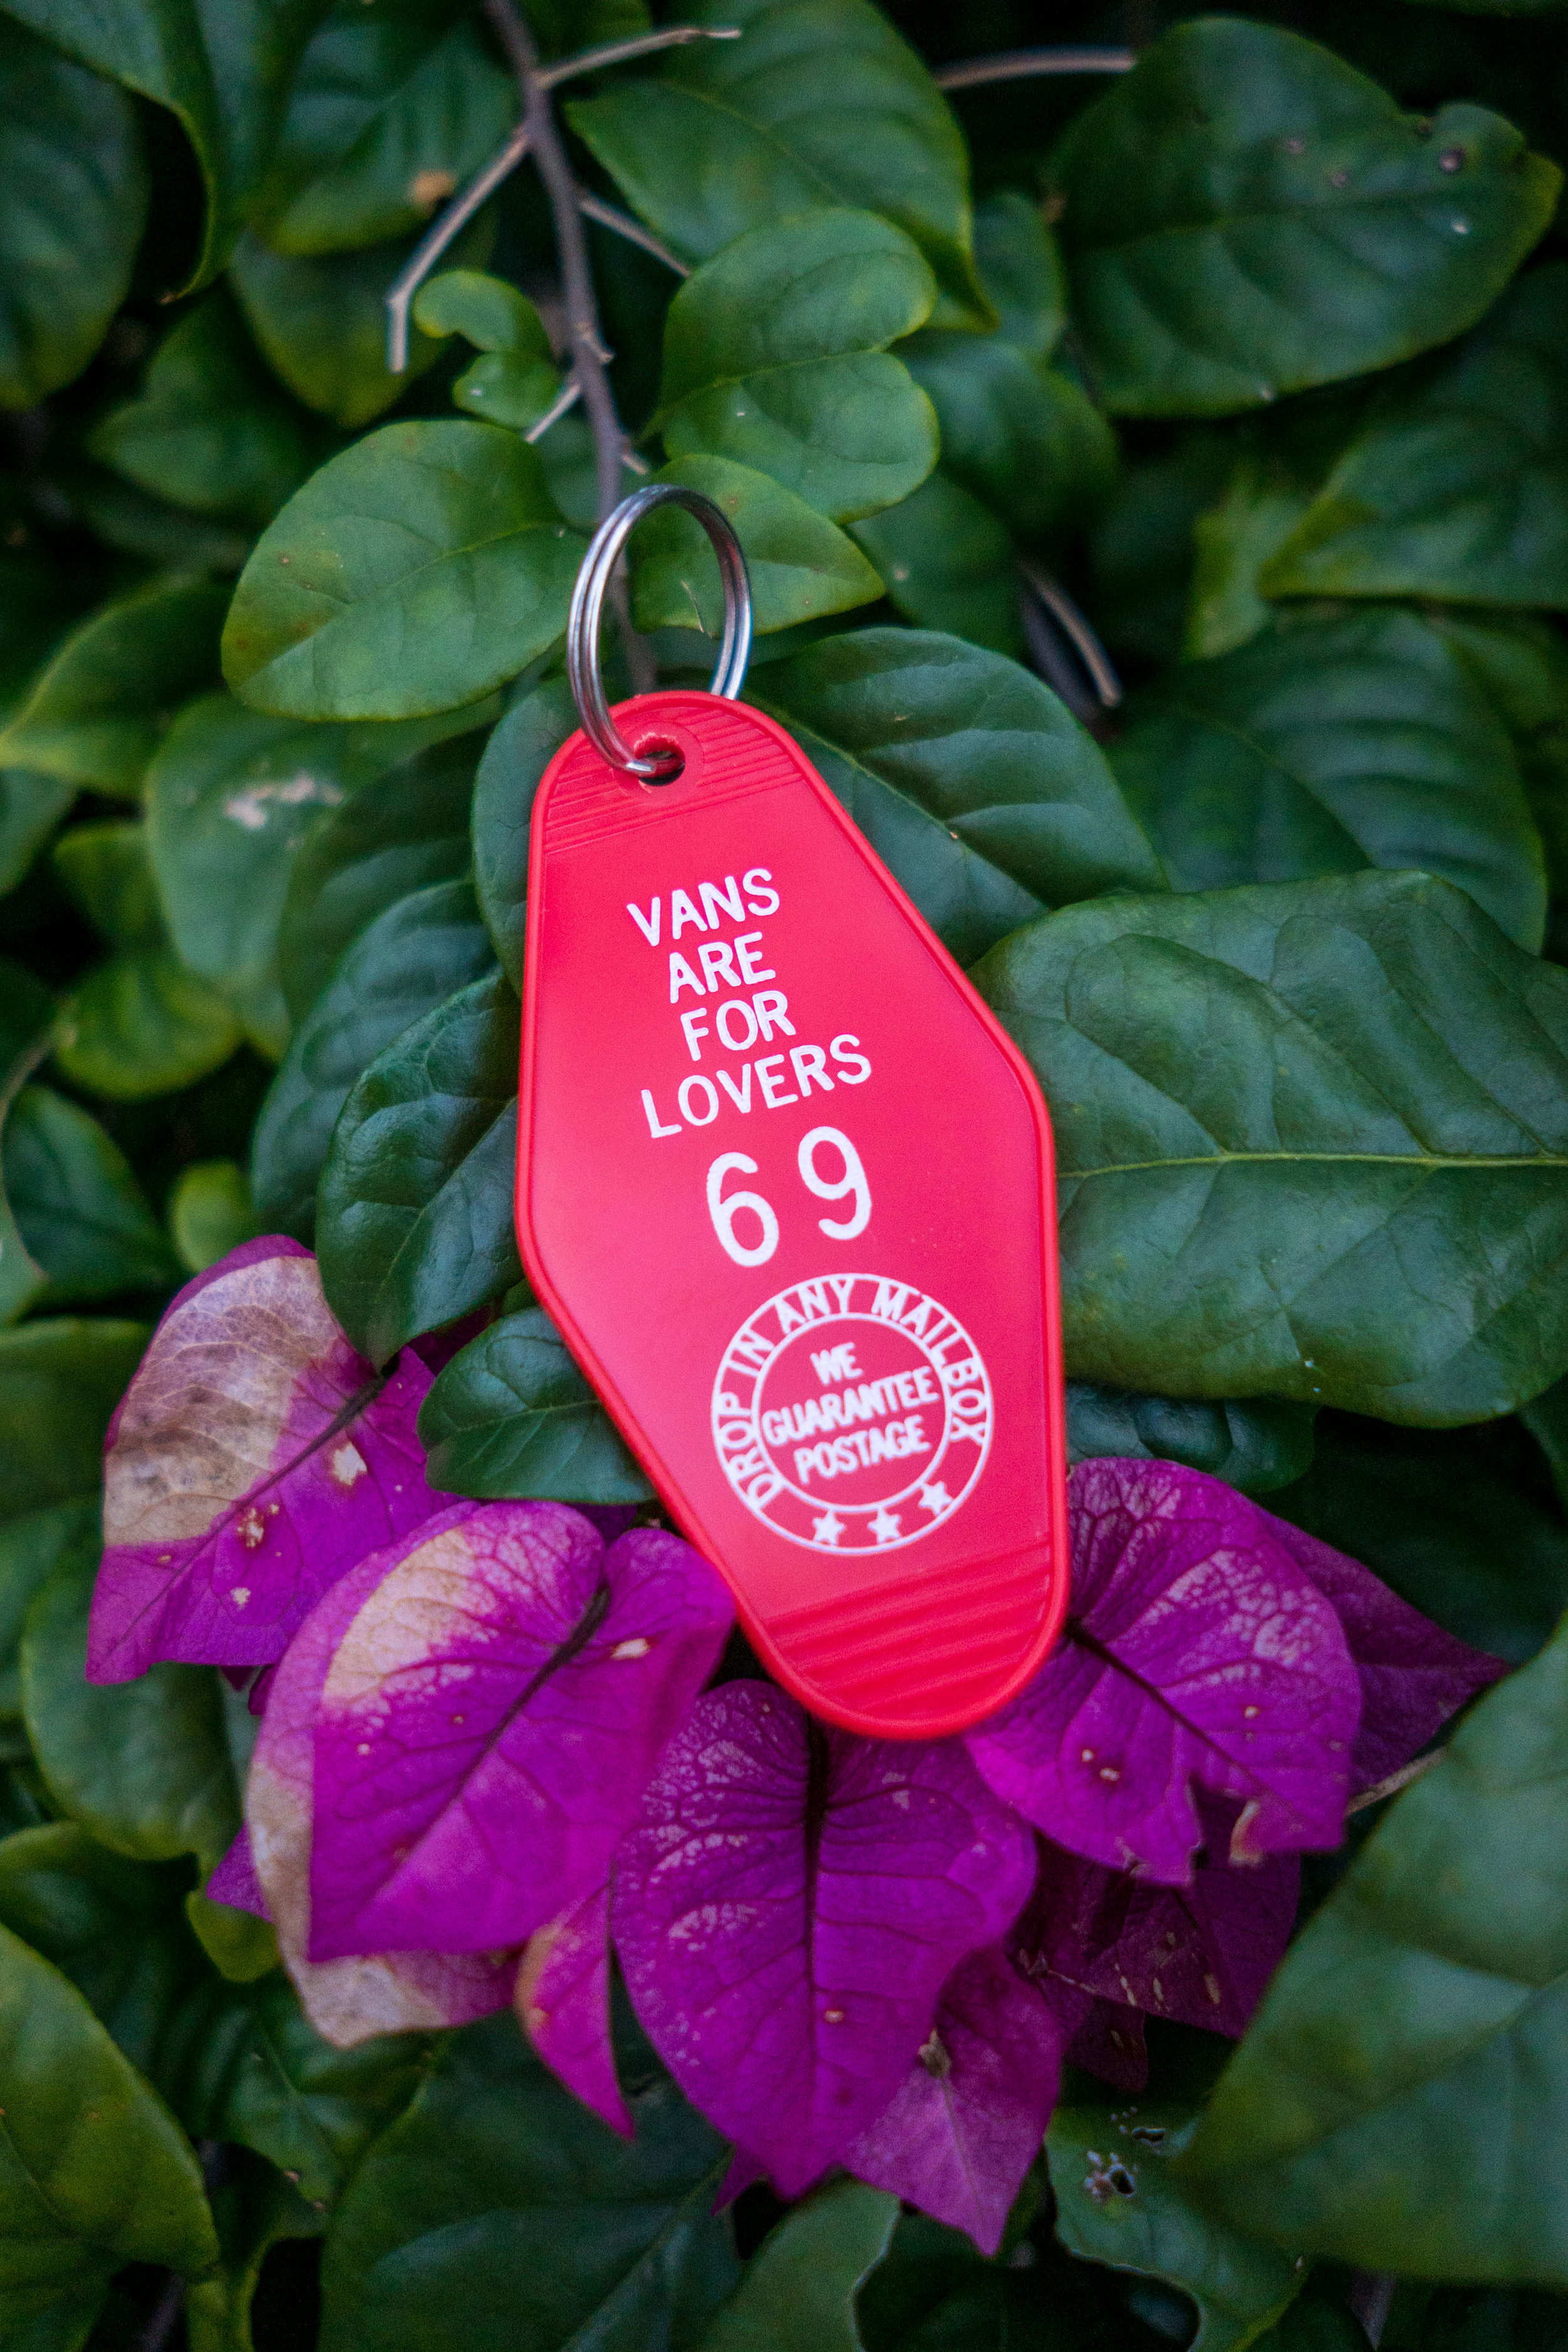 Vans are for Lovers Key Tag (they're all #69) ;)